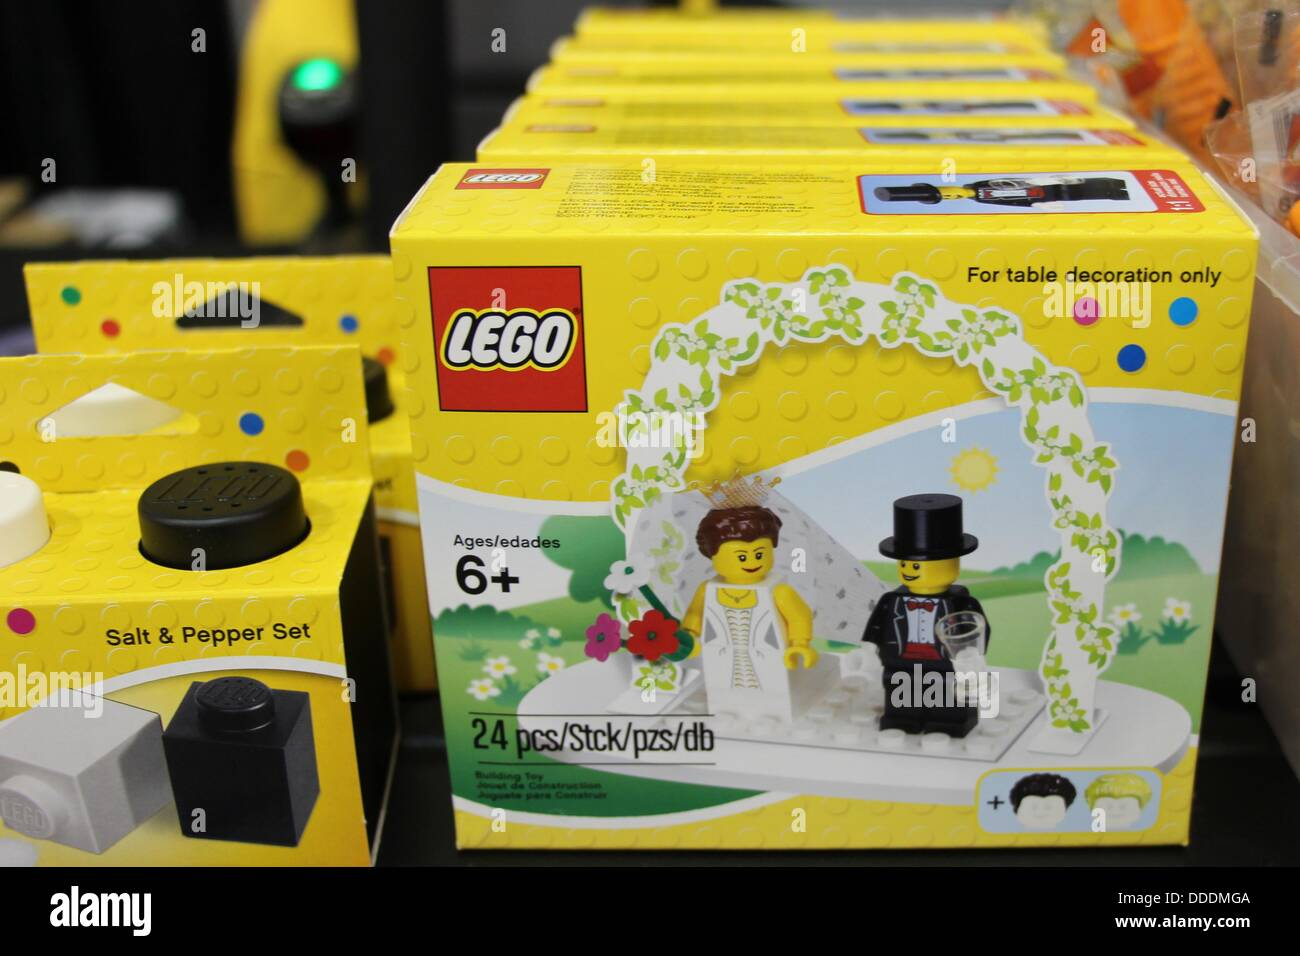 Lego Wedding Cake Topper And Salt And Pepper Set Stock Photo